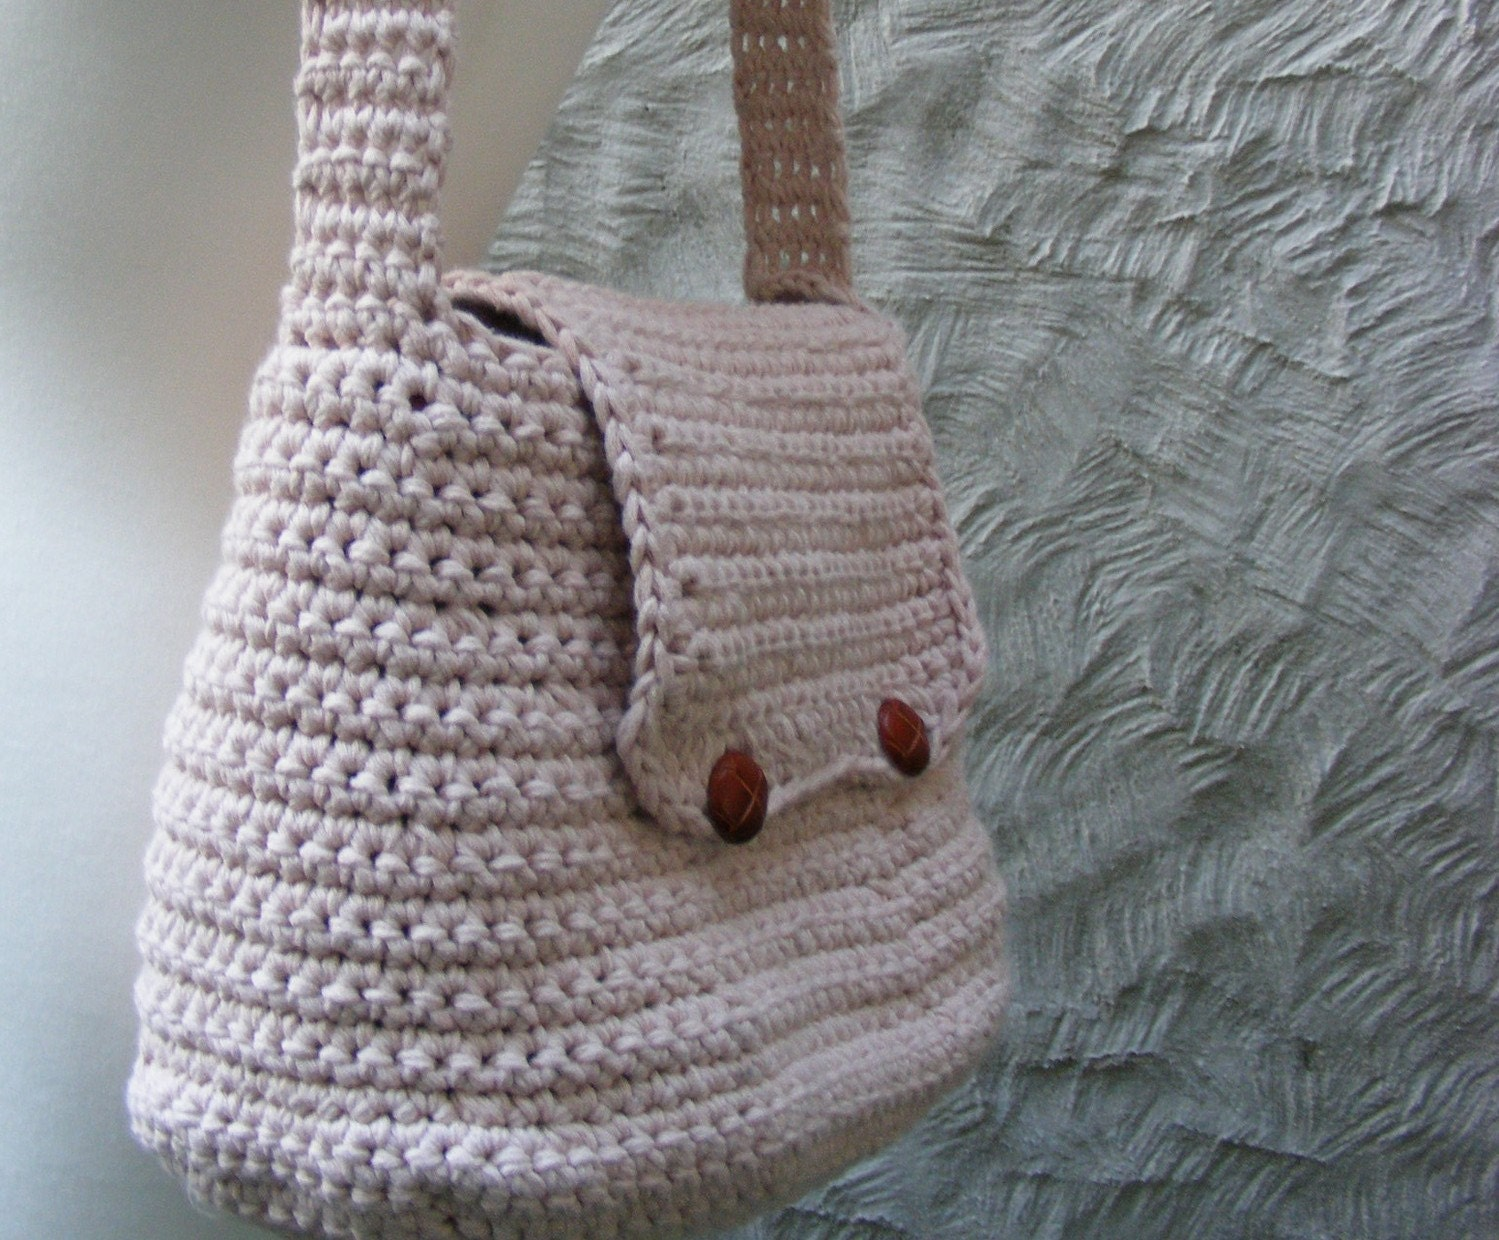 Simple Crochet Bag Pattern : EASY CROCHET PURSE PATTERNS How To Crochet